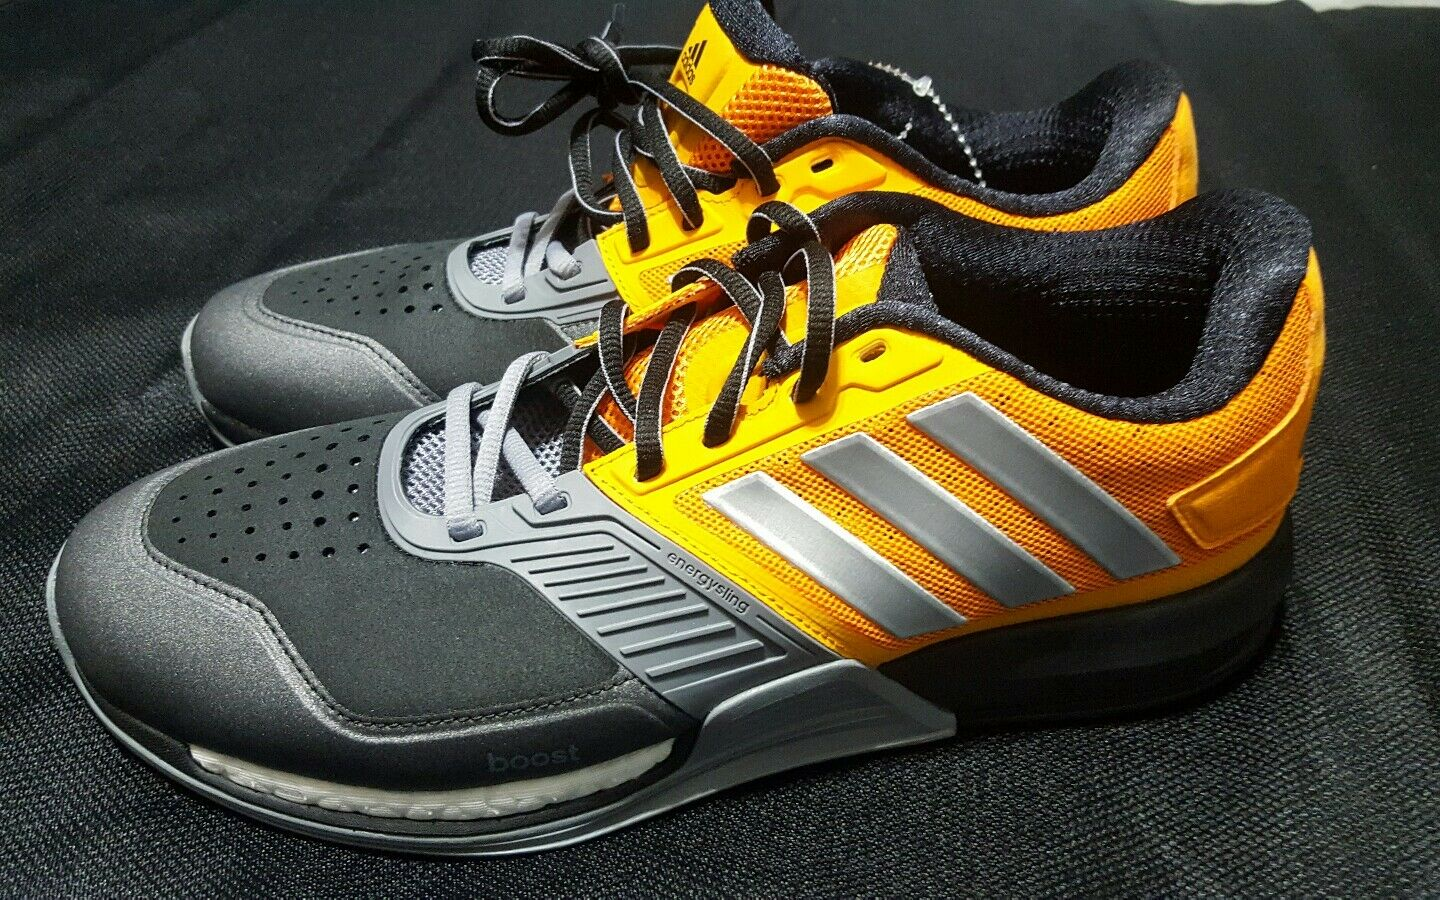 NEW Adidas Crazy Train Boost Sneakers Shoes, Grey/Orange/Black